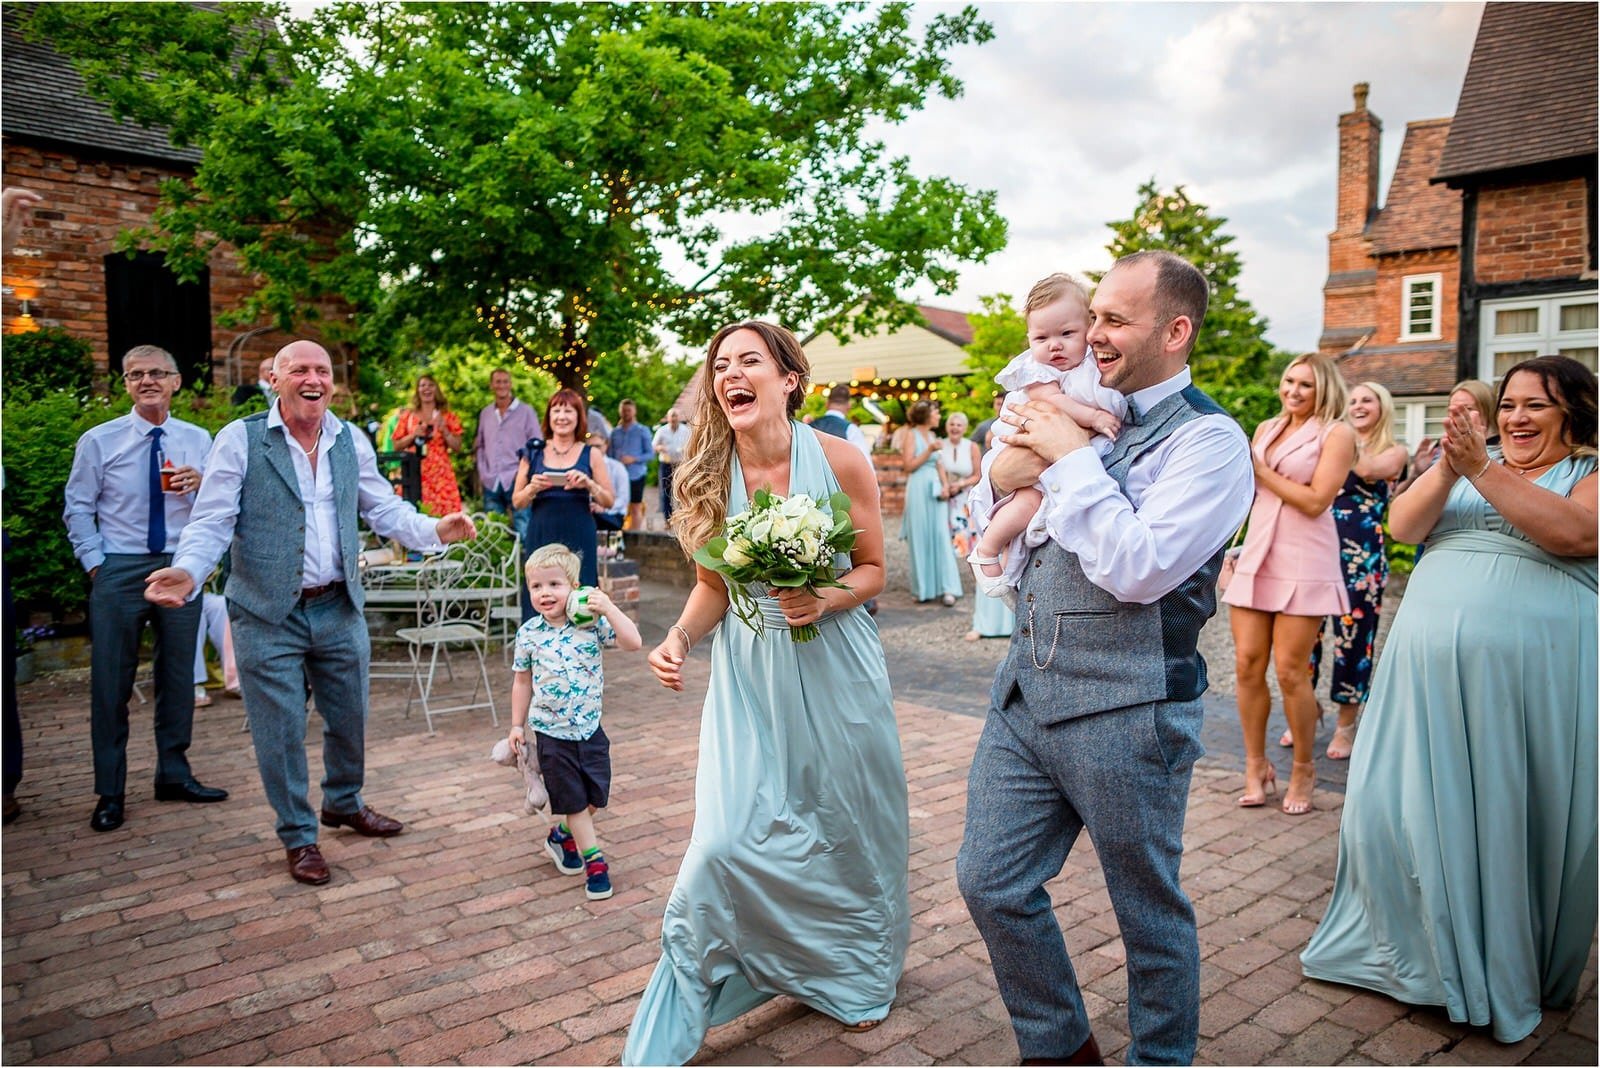 bridesmaid super happy to be given the brides bouquet instead of having to catch it - at curradine barns wedding venue in worcestershire